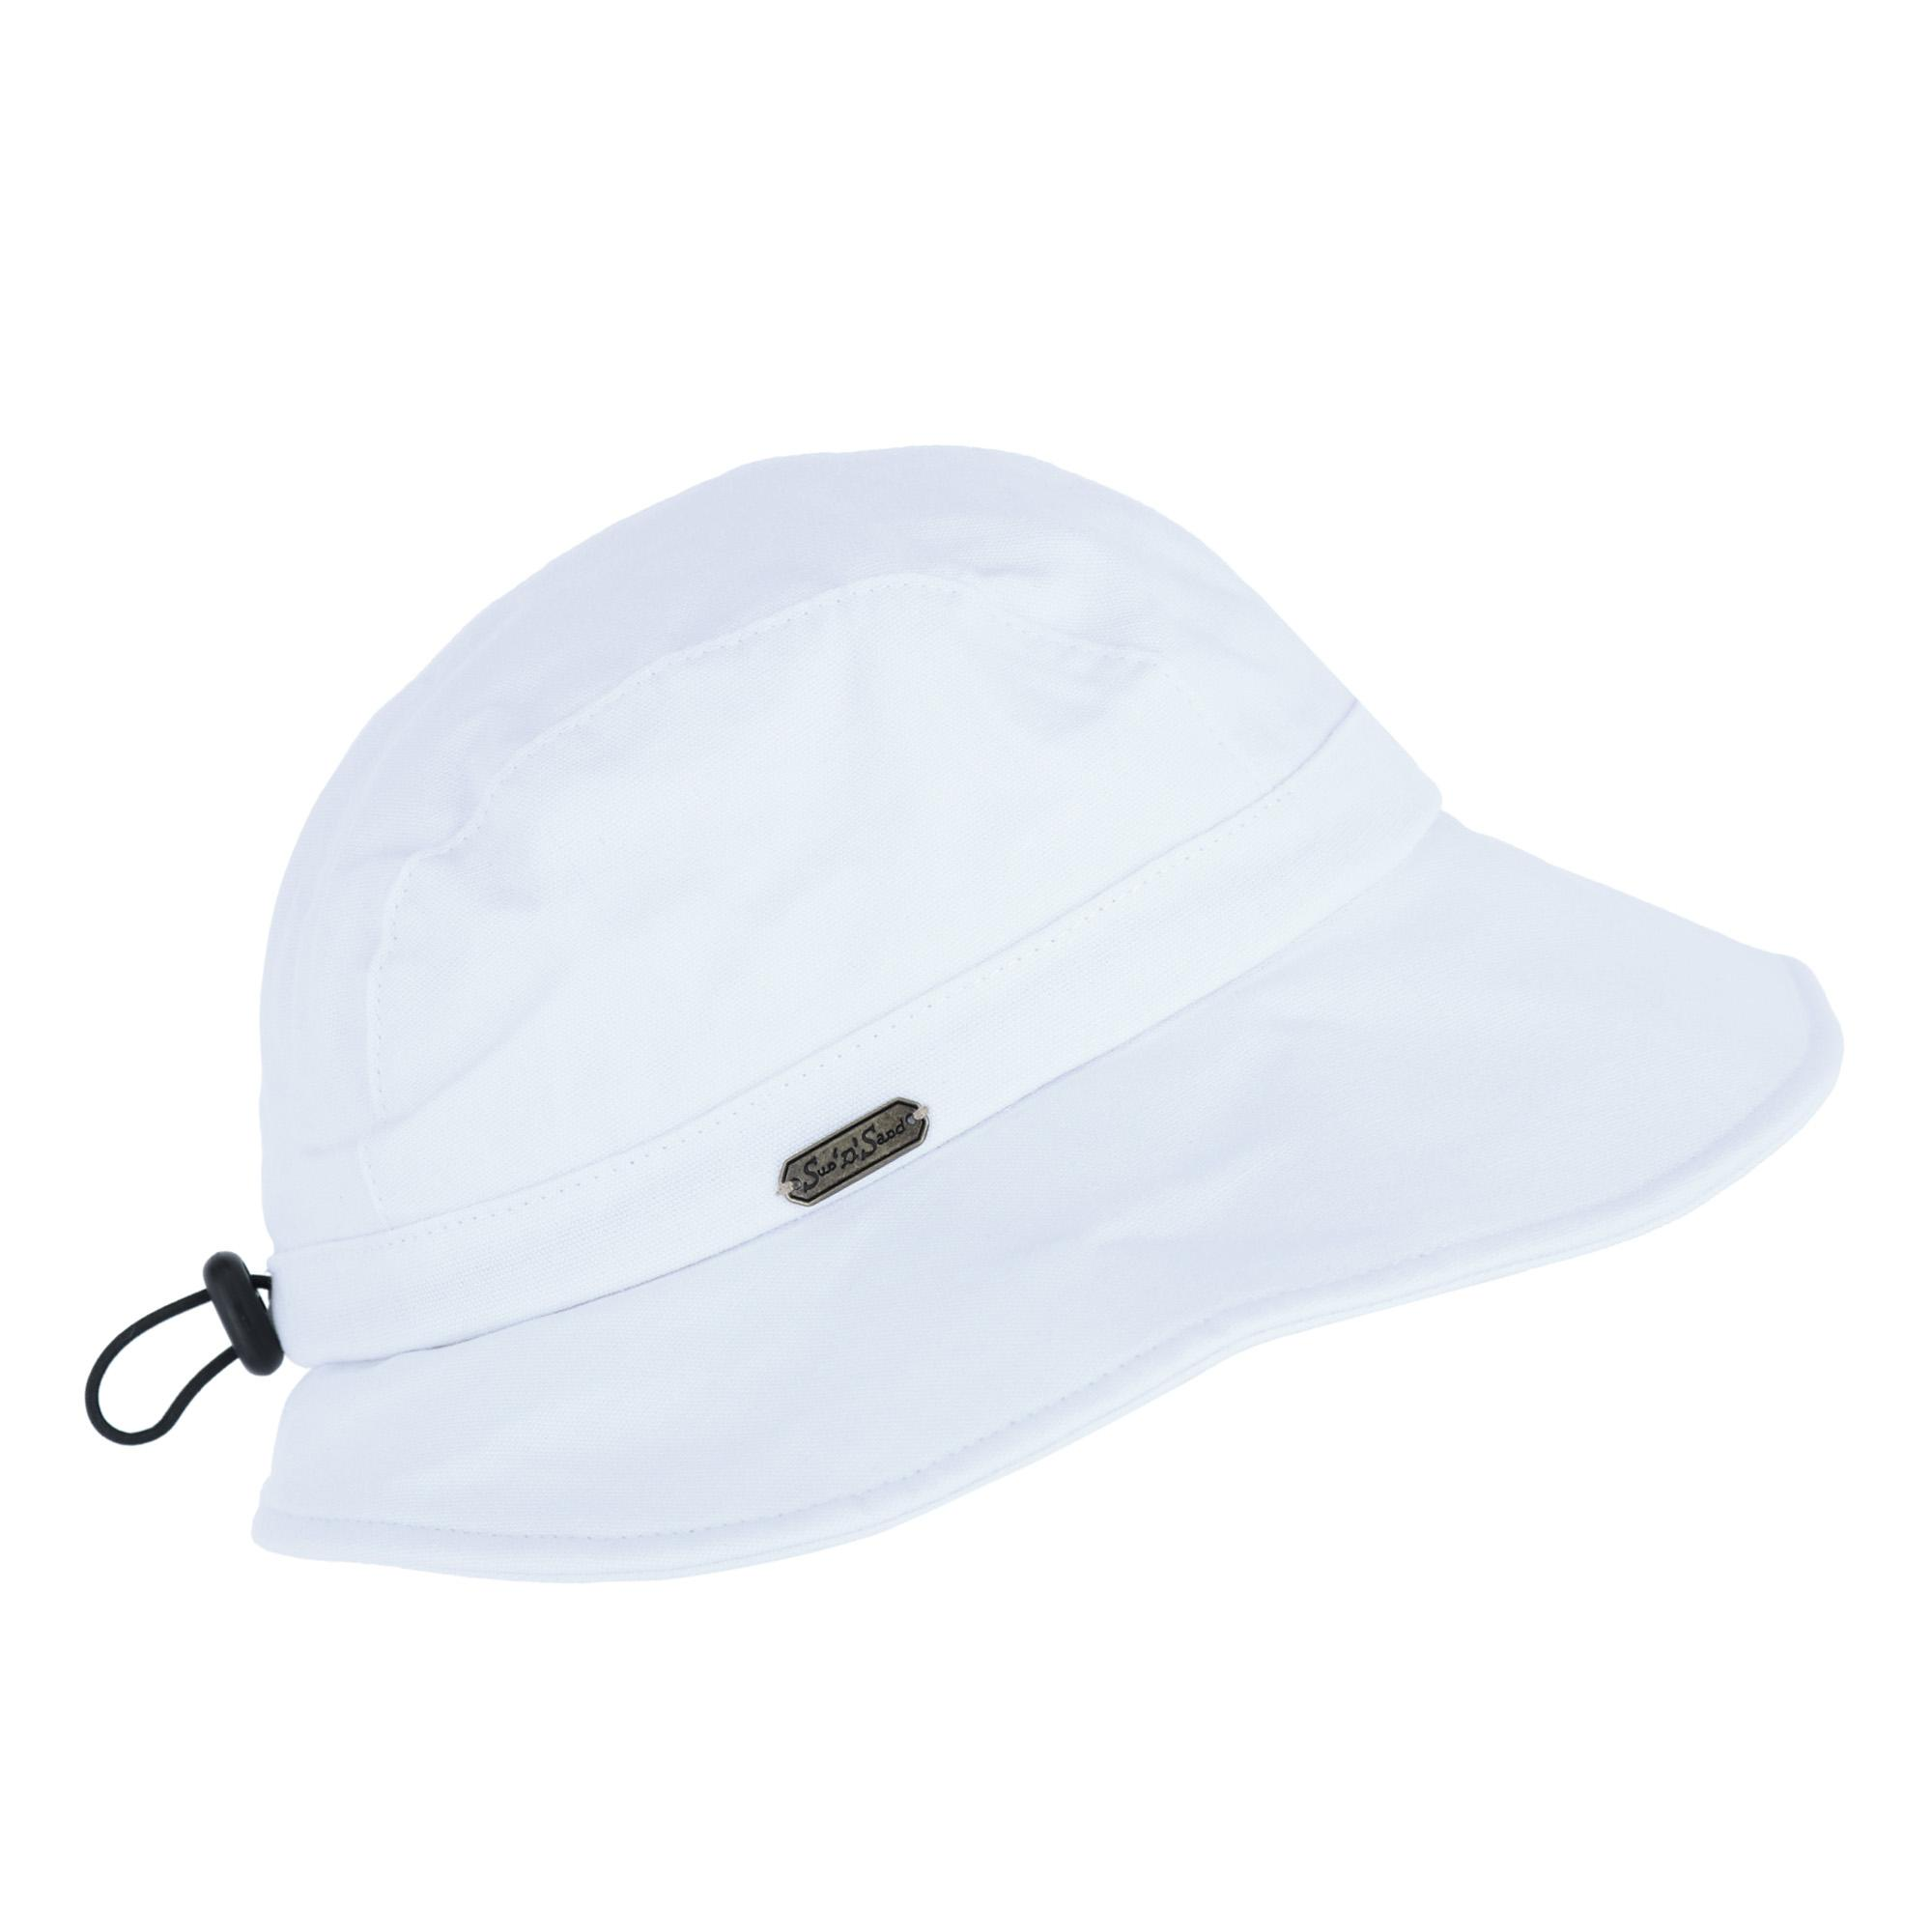 051b784986425 Sun N Sand Women s Cotton Packable Facesaver Hat with Adjustable Toggle